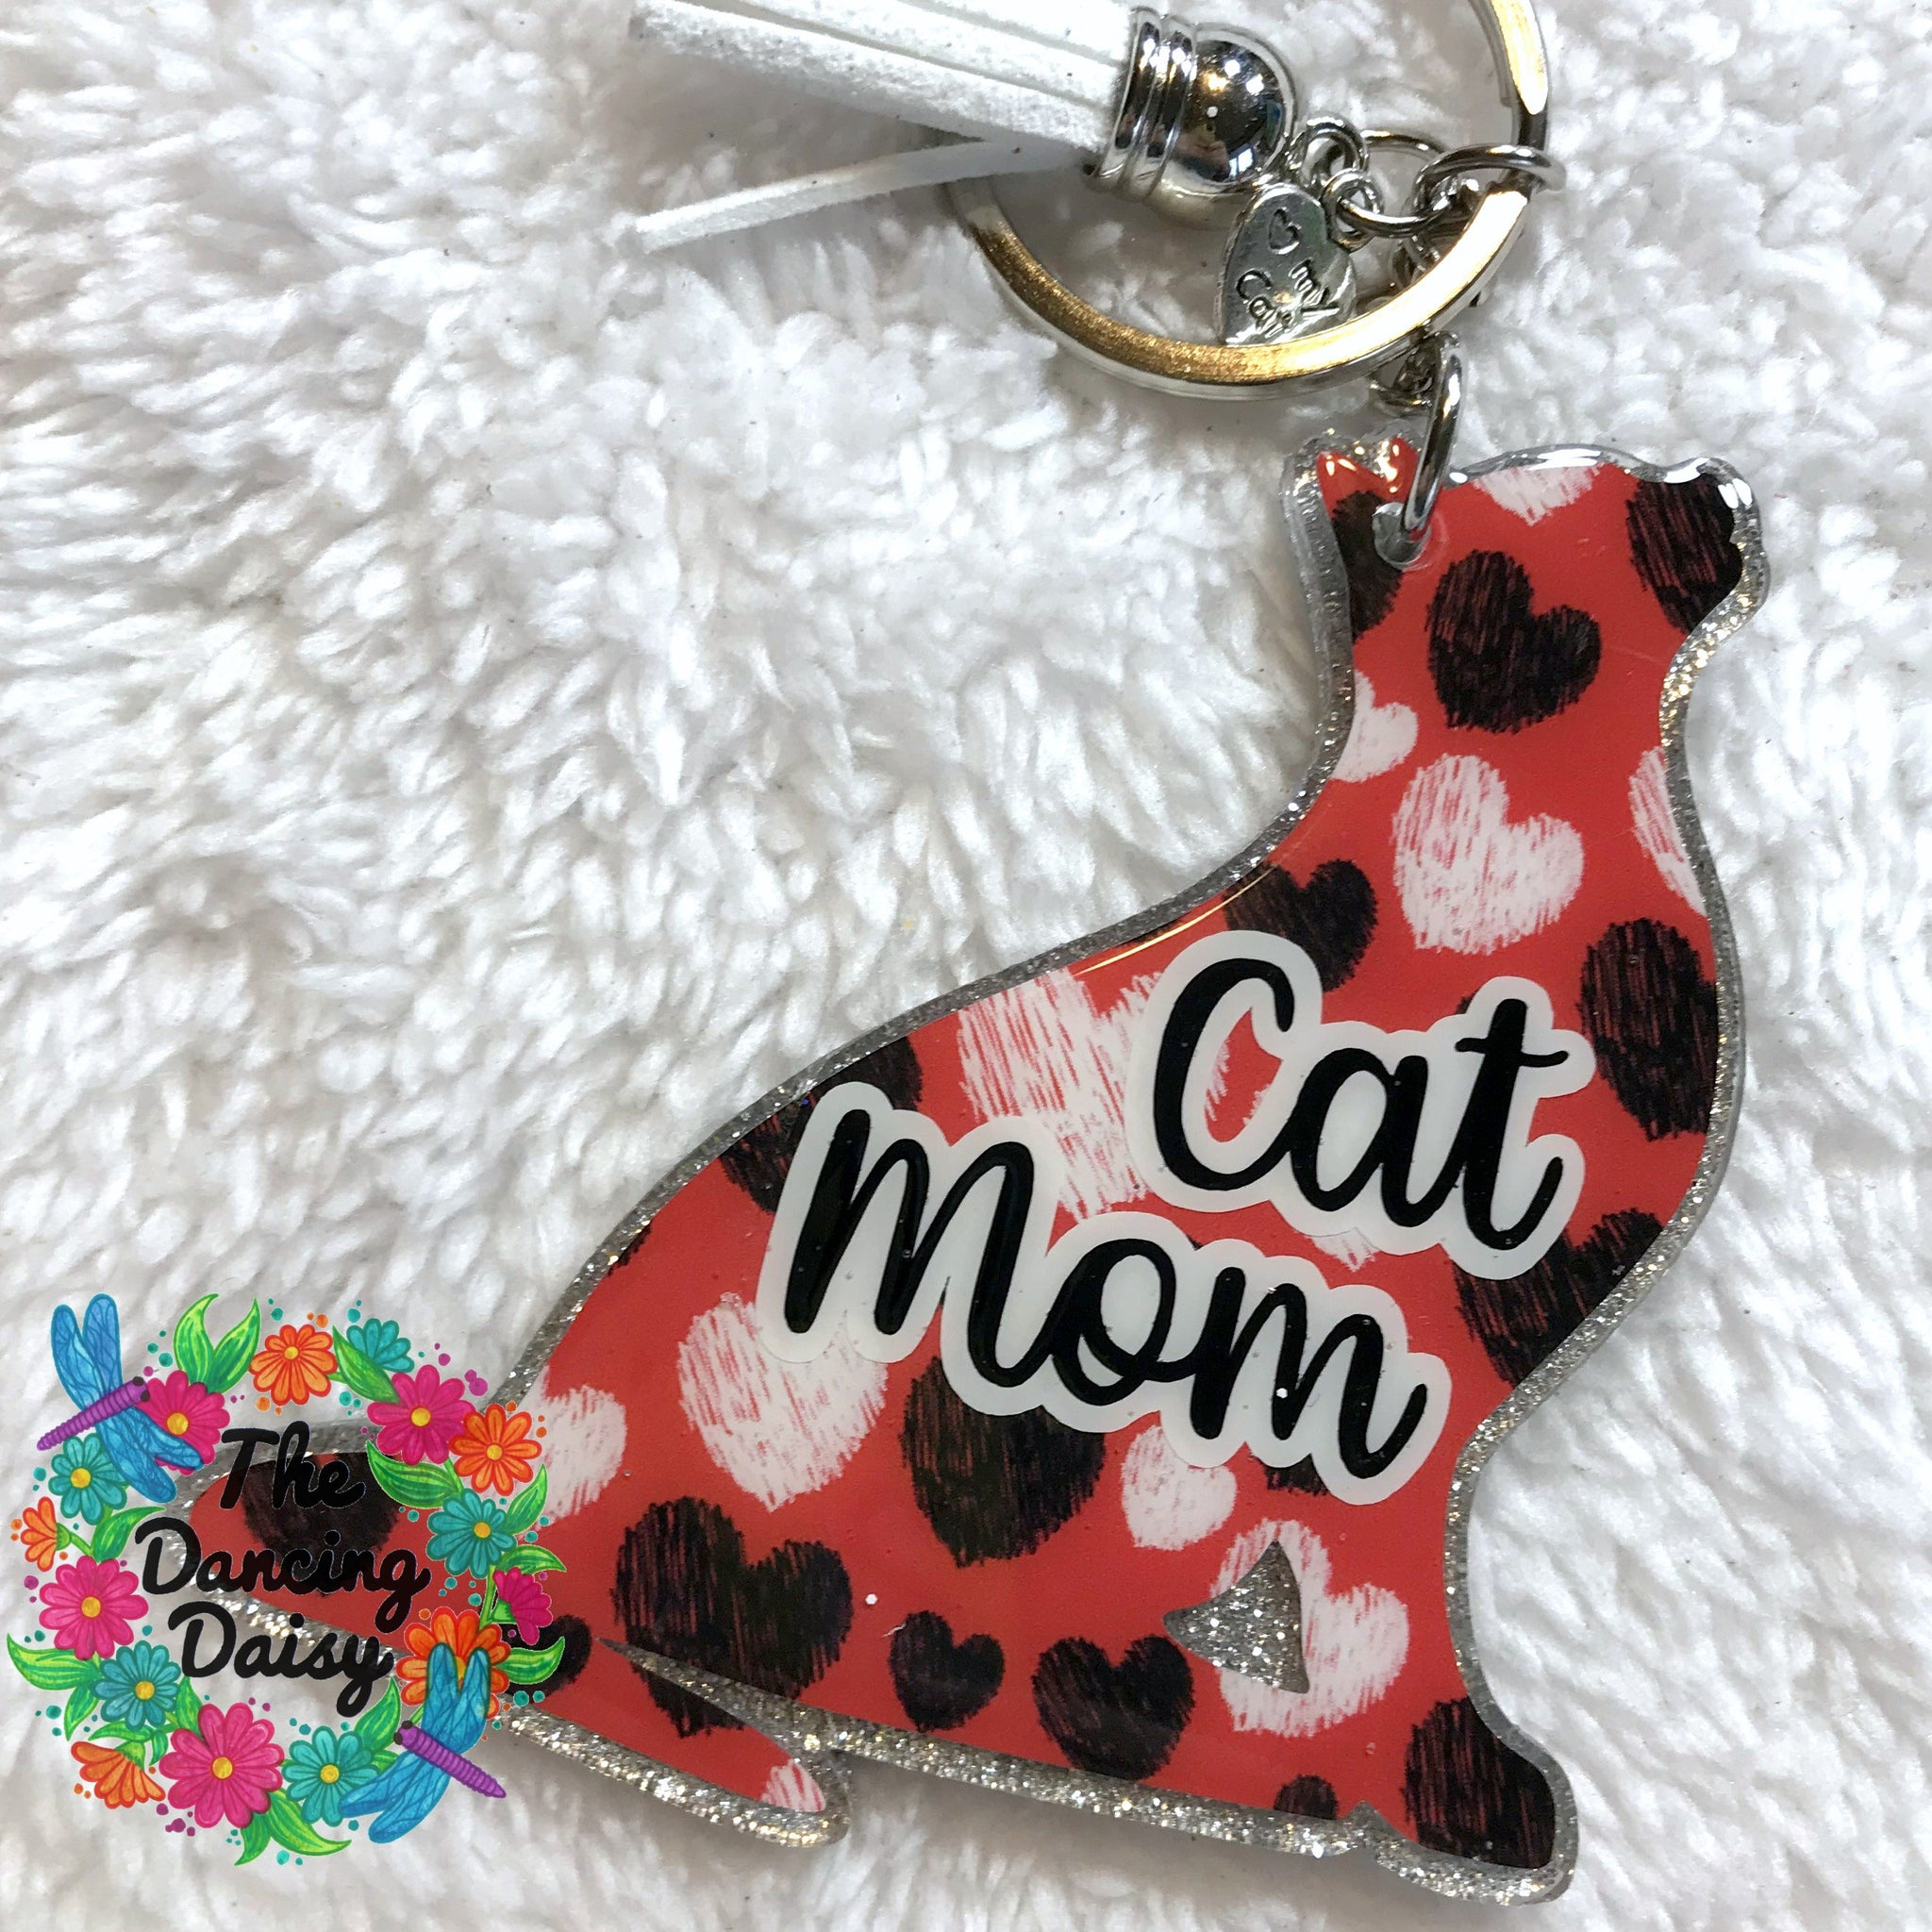 Cat Sitting acrylic keychain